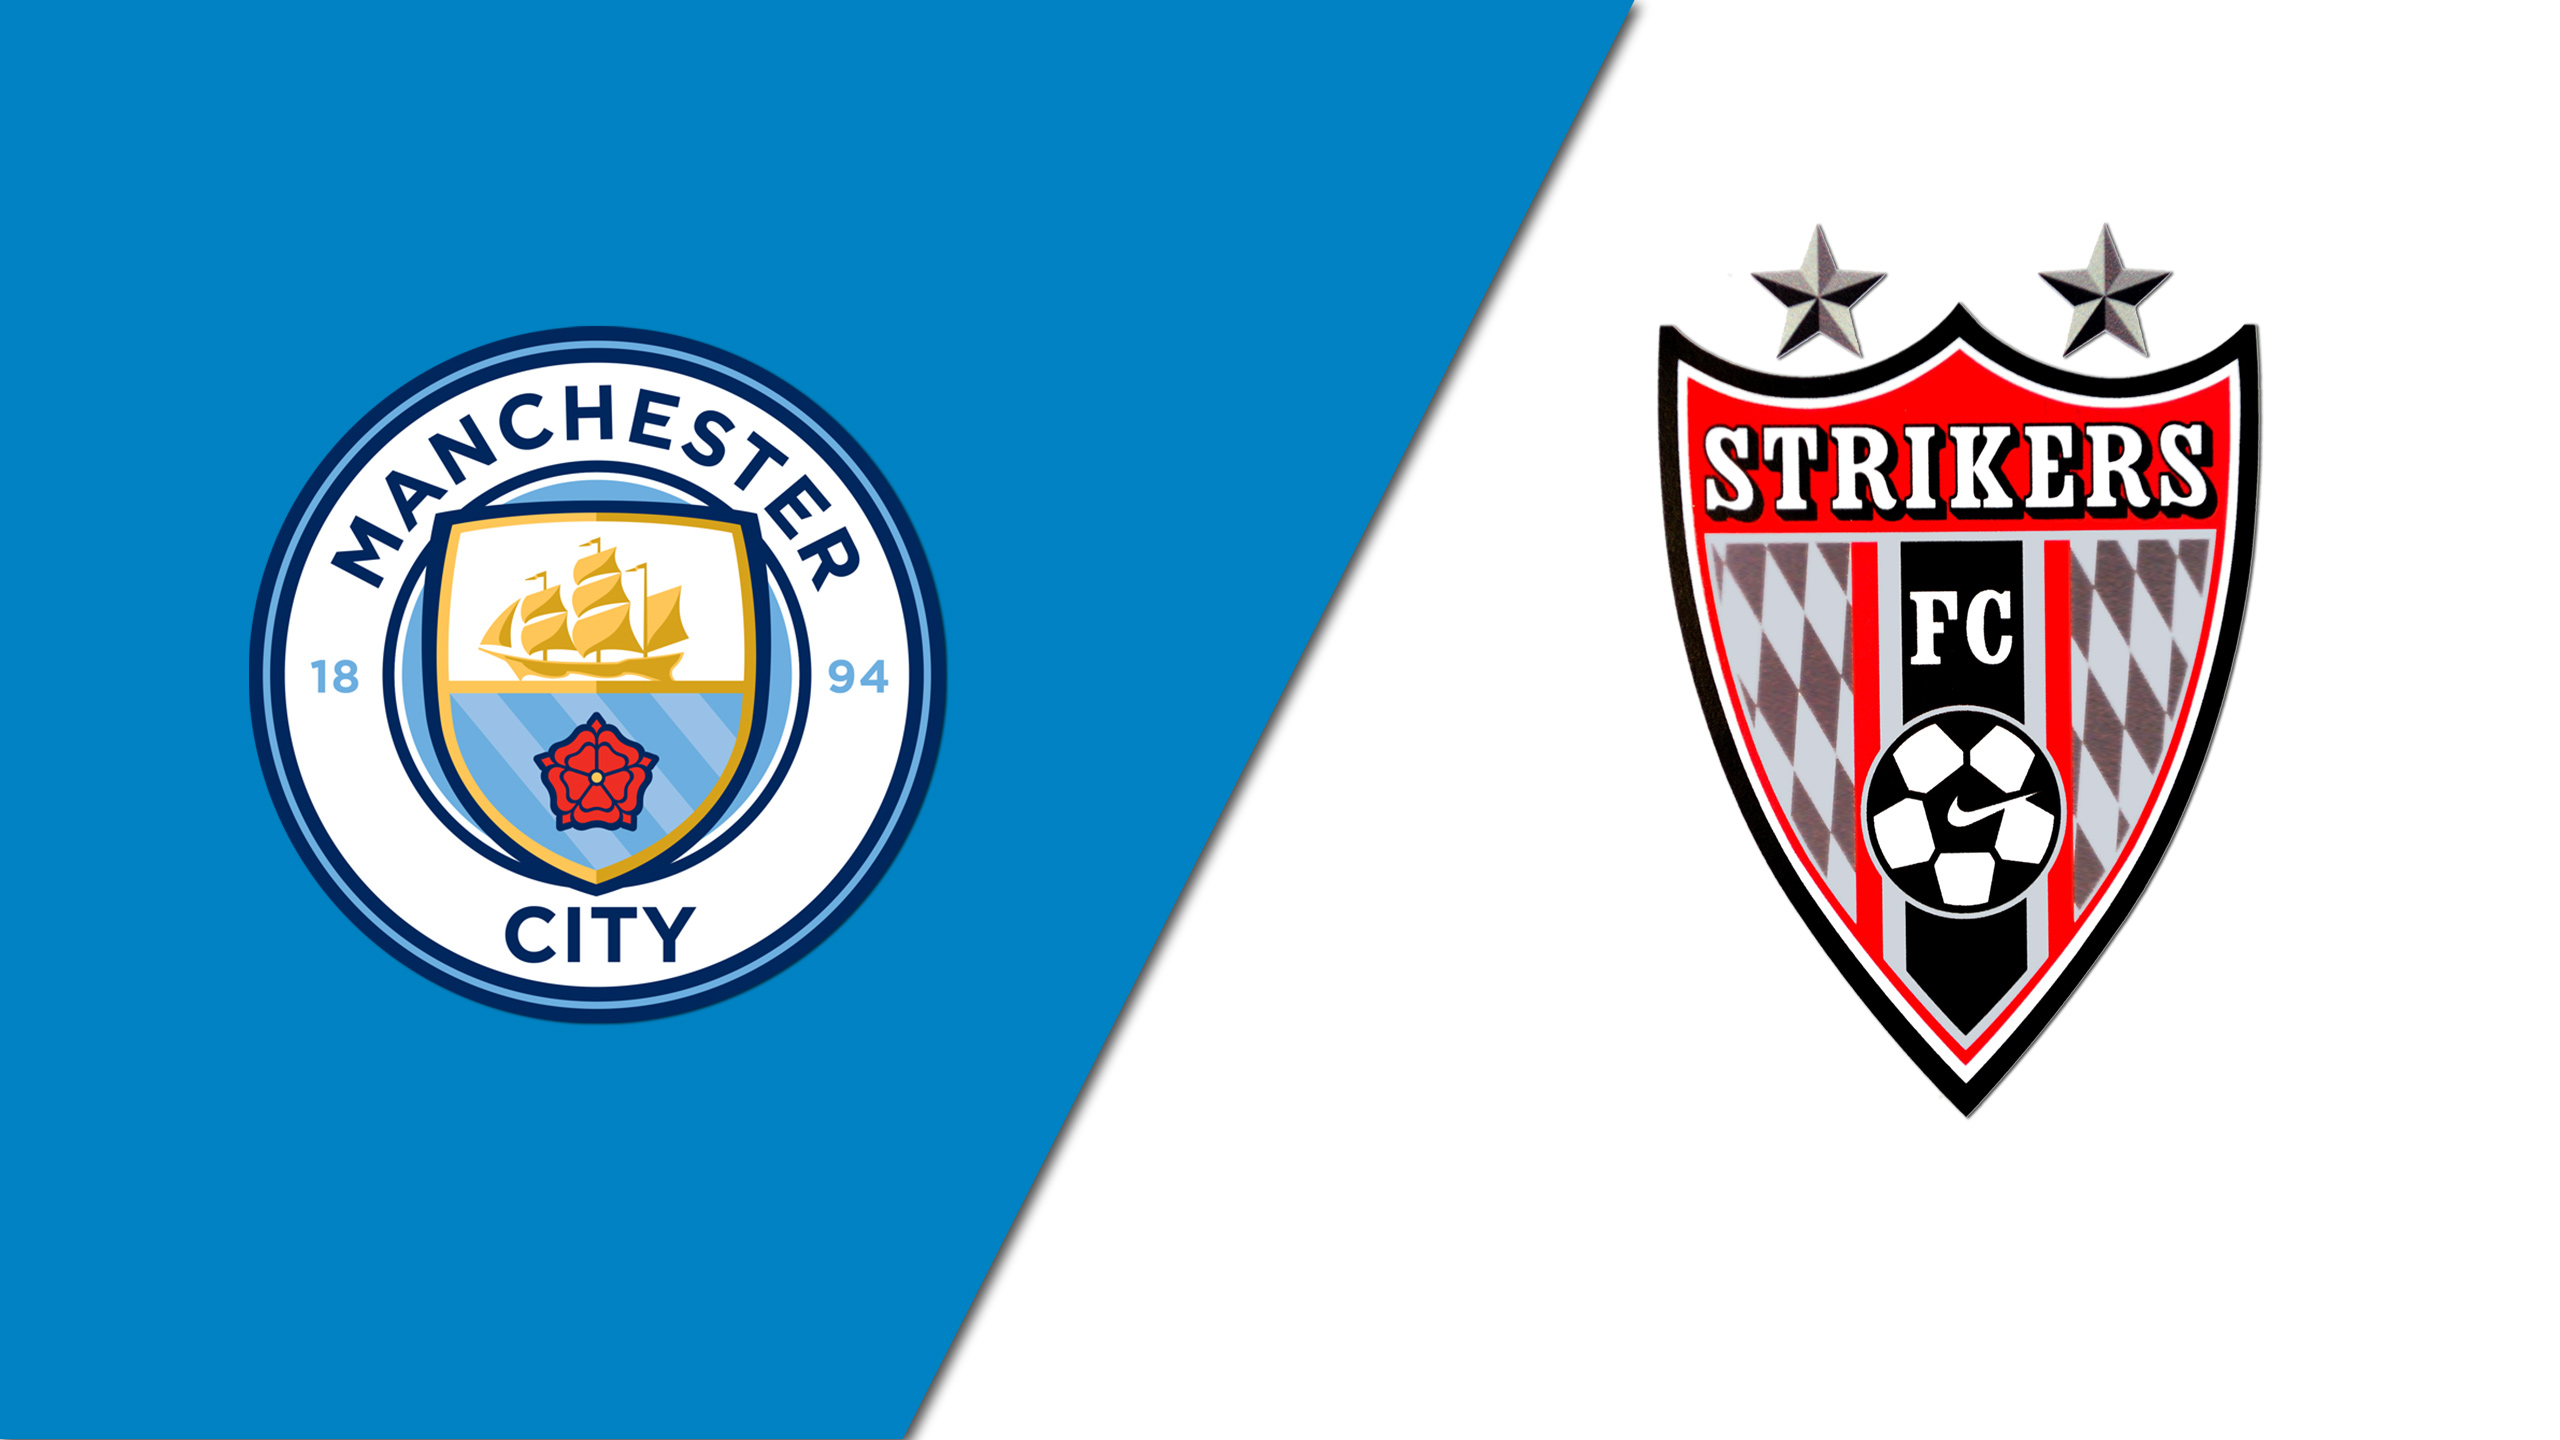 Manchester City Under-14 vs. Strikers FC Under-14